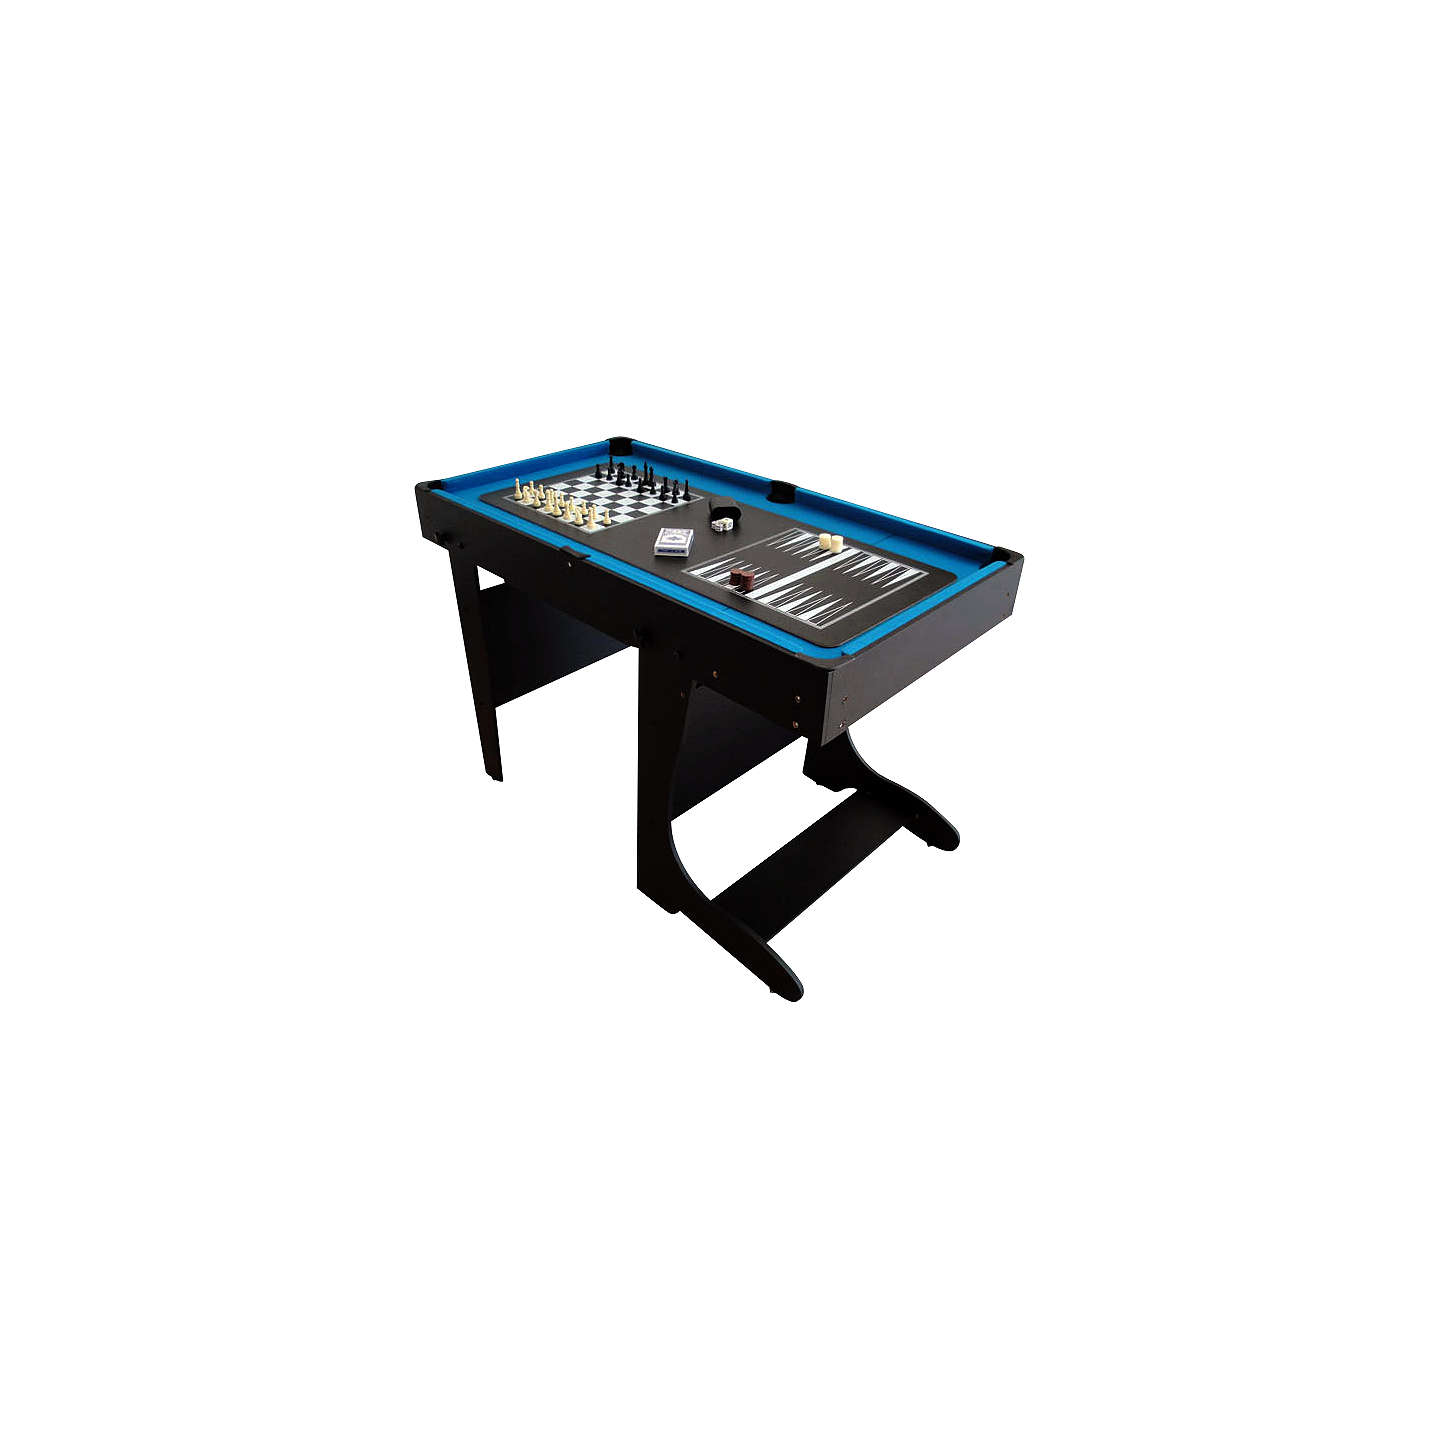 Bce riley 12 in 1 folding multi games table at john lewis for 12 in one multi game table